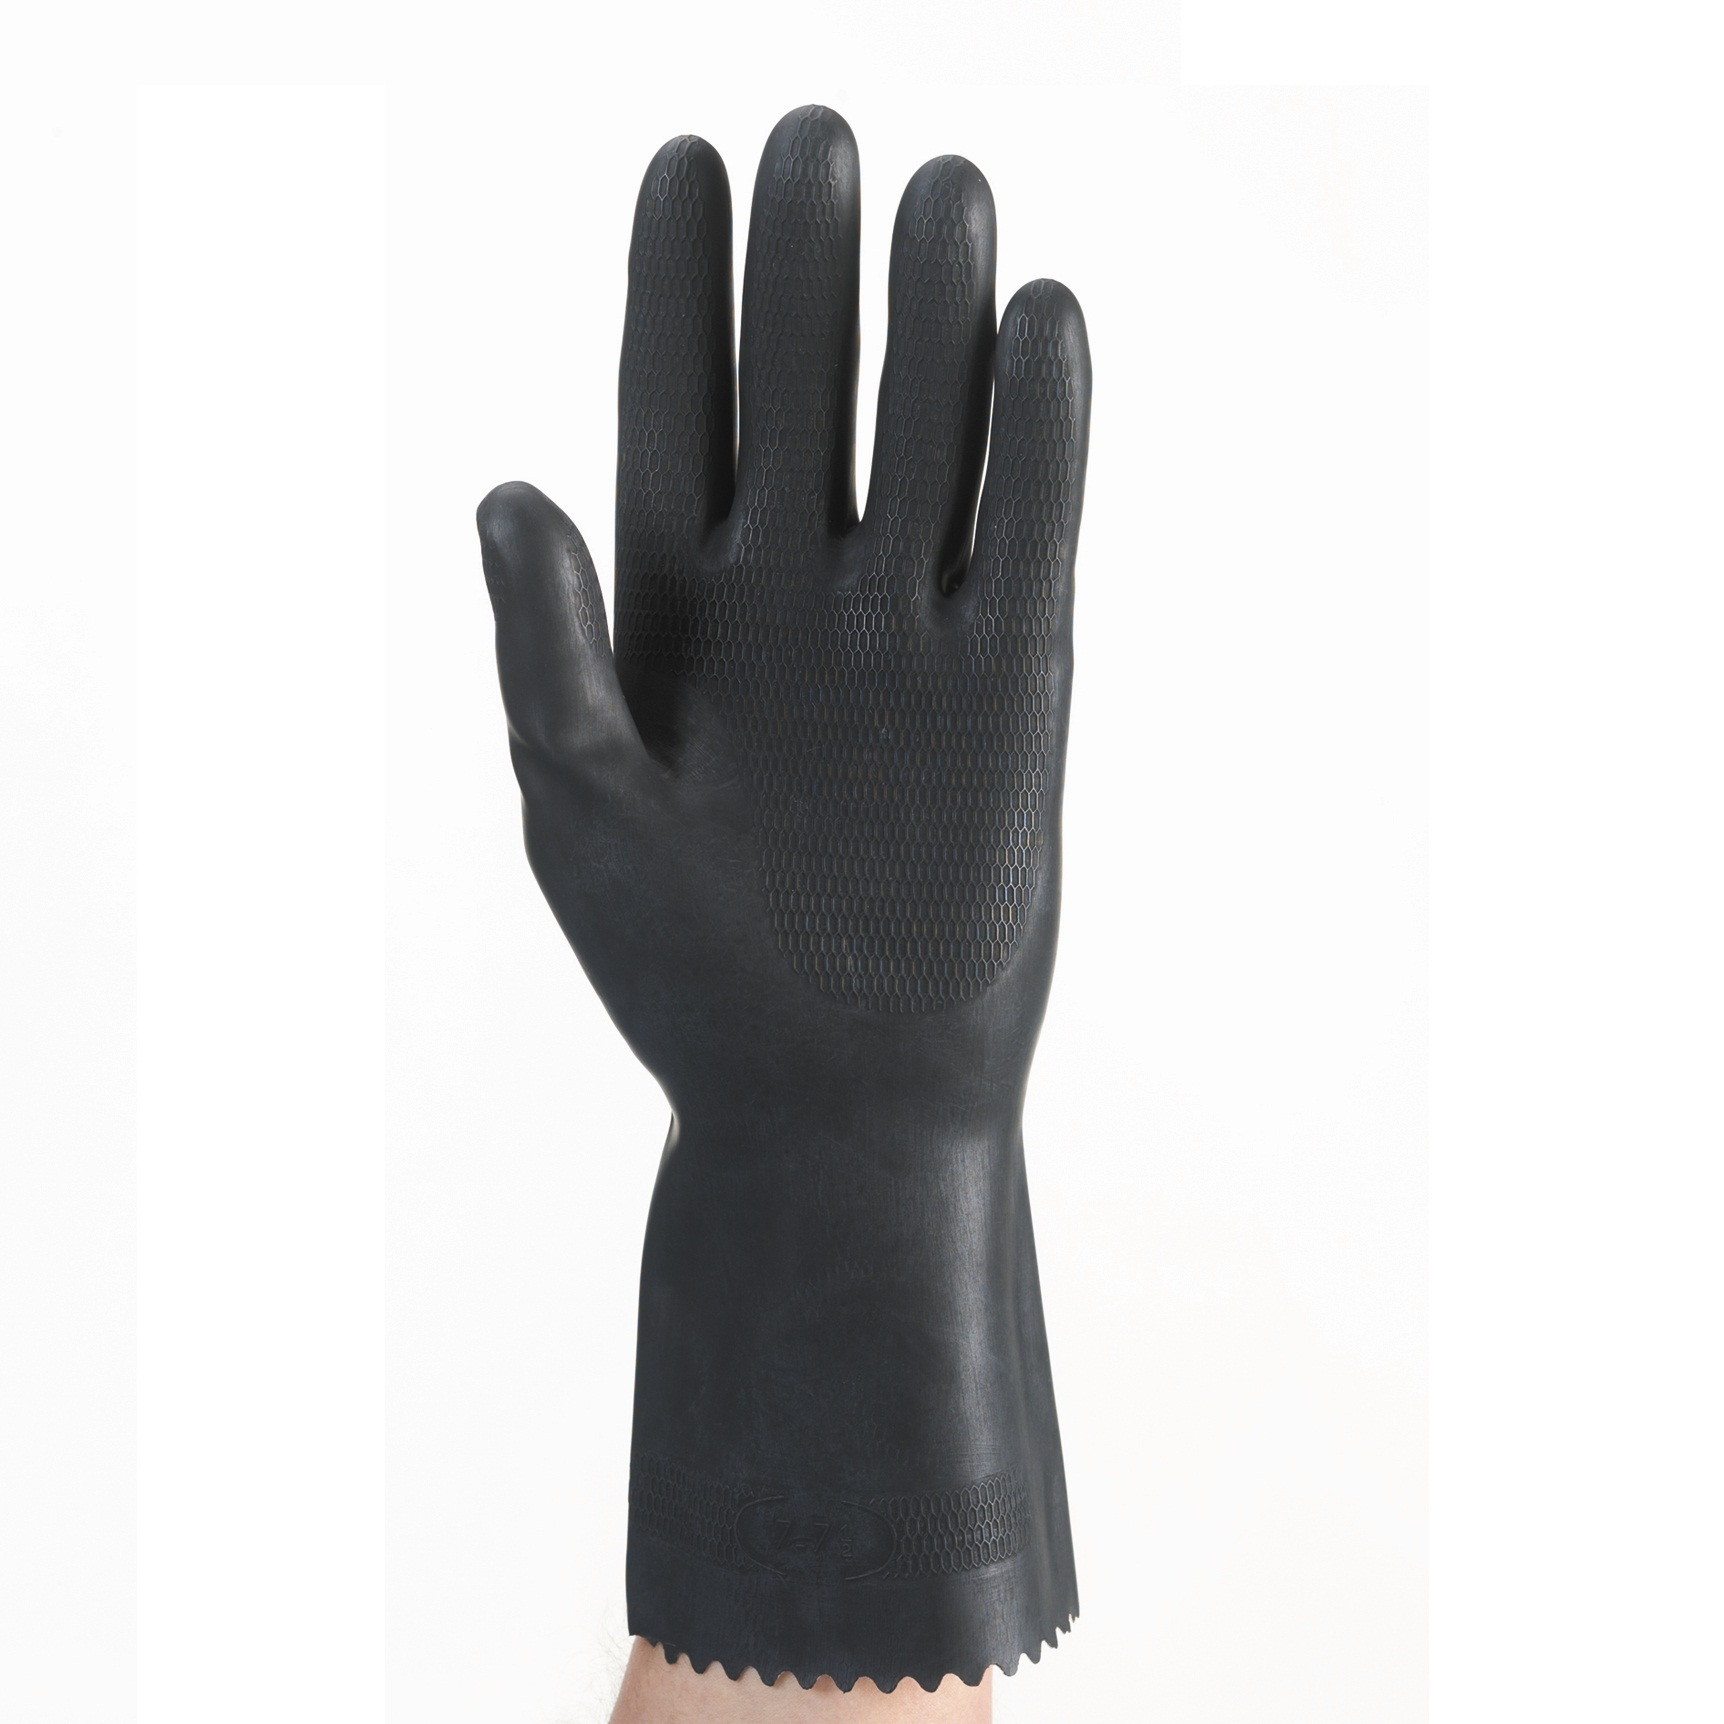 Polyco Maxima Glove Heavy Duty Black Rubber Glove also Steam Methane Reforming Efficiency as well Conversion Calculator Resistor Color Code 4 Band furthermore DRILLING AB further Protecting Snow Leopards In The Face Of Climate Change. on natural gas sensors